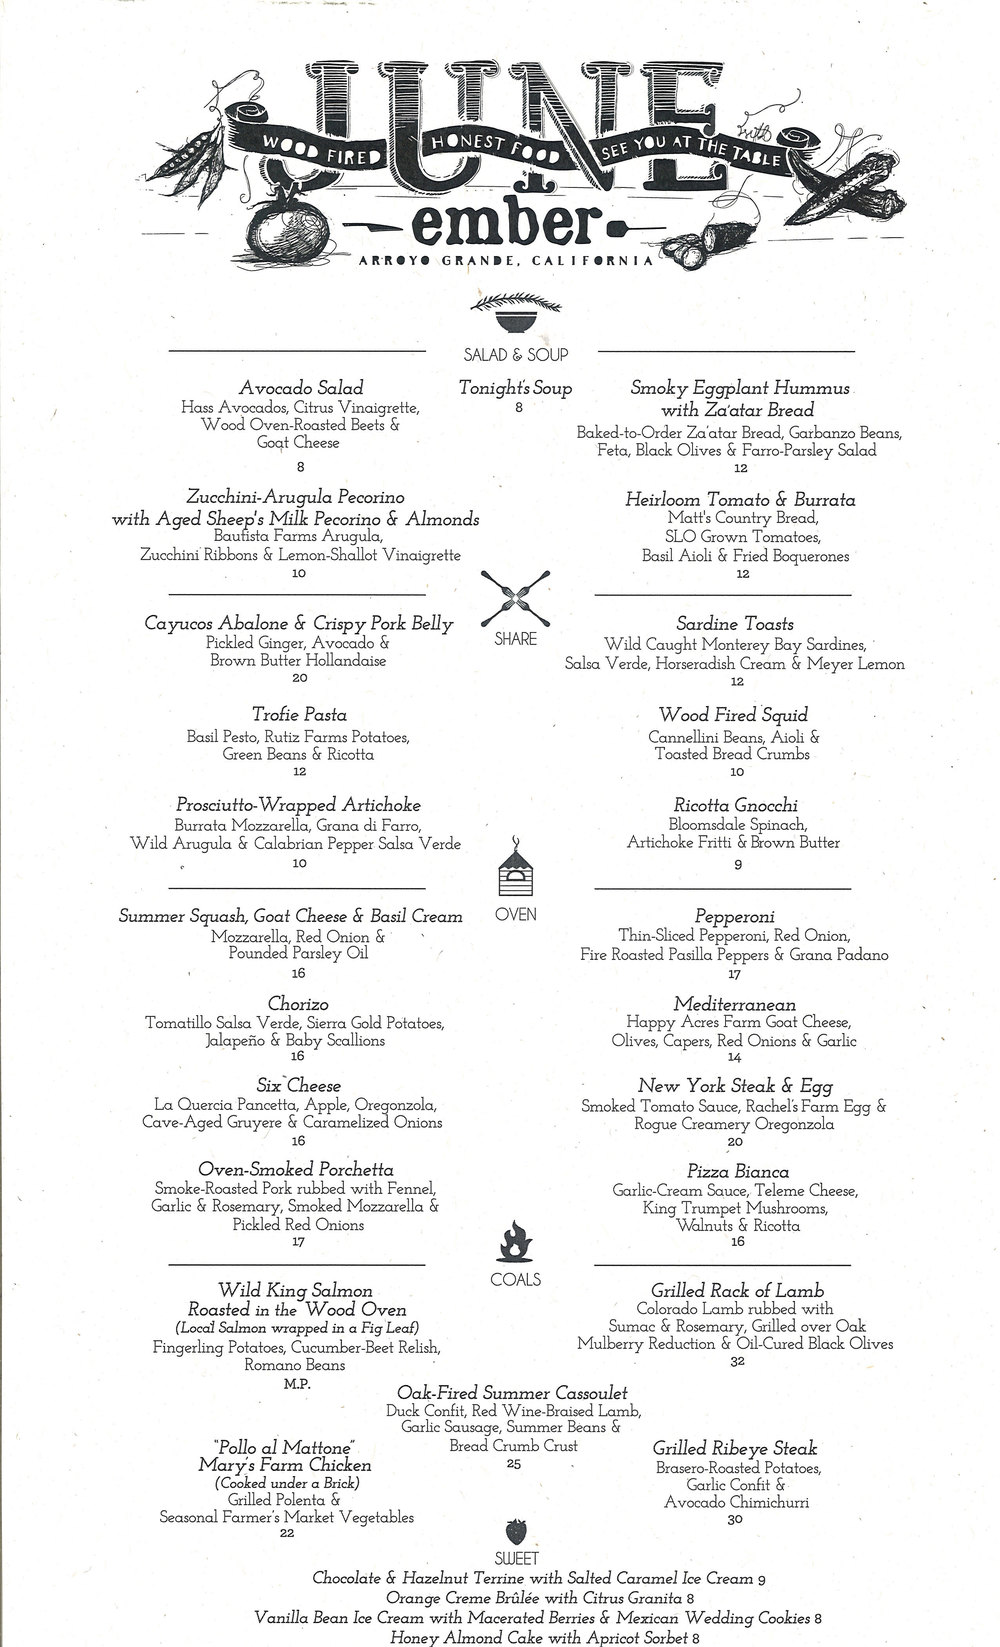 ember-restaurant-arroyo-grande-june-menu